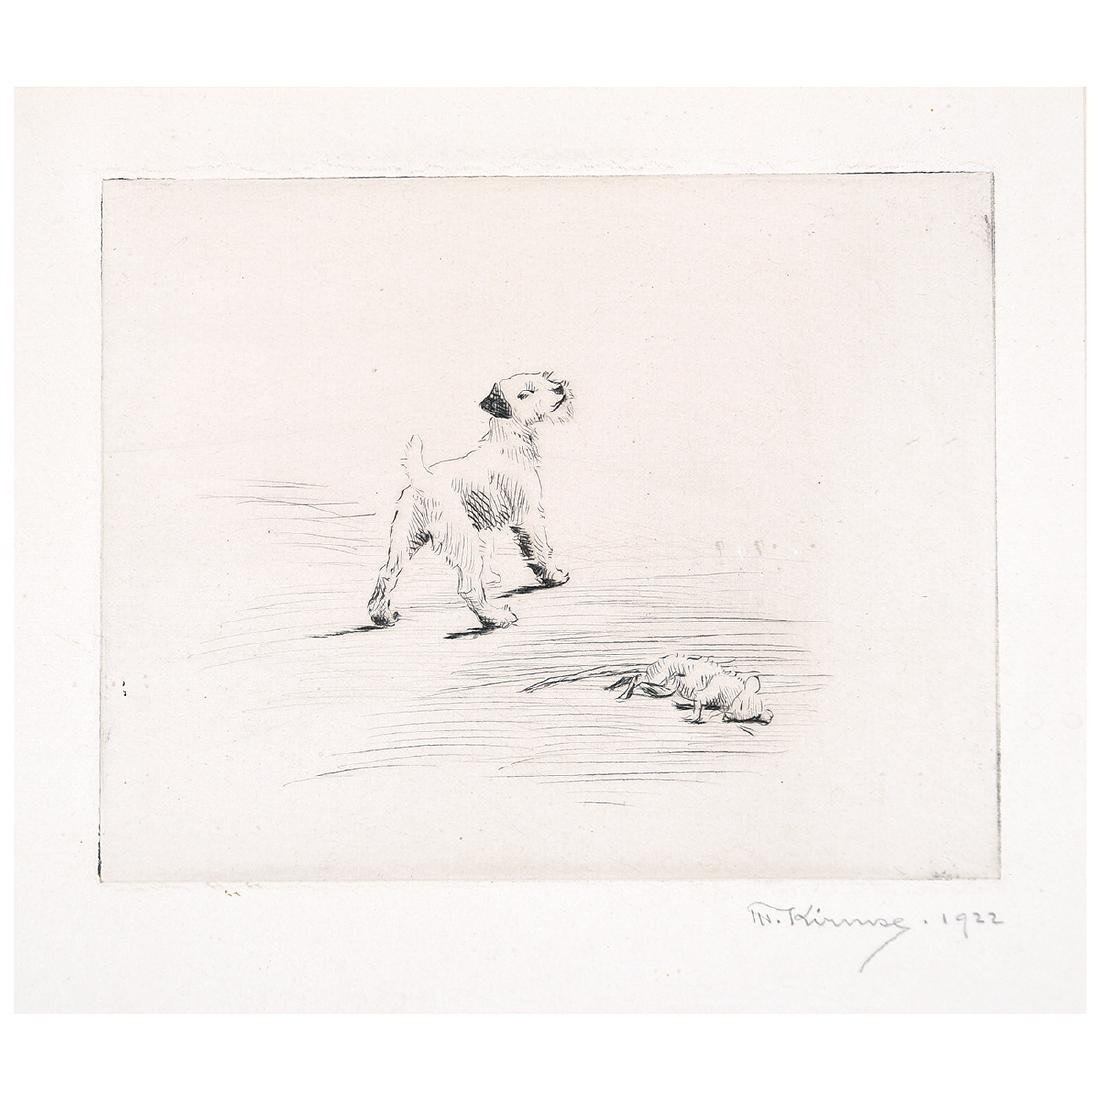 """Marguerite Kirmse """"His First Kill"""" drypoint etching"""